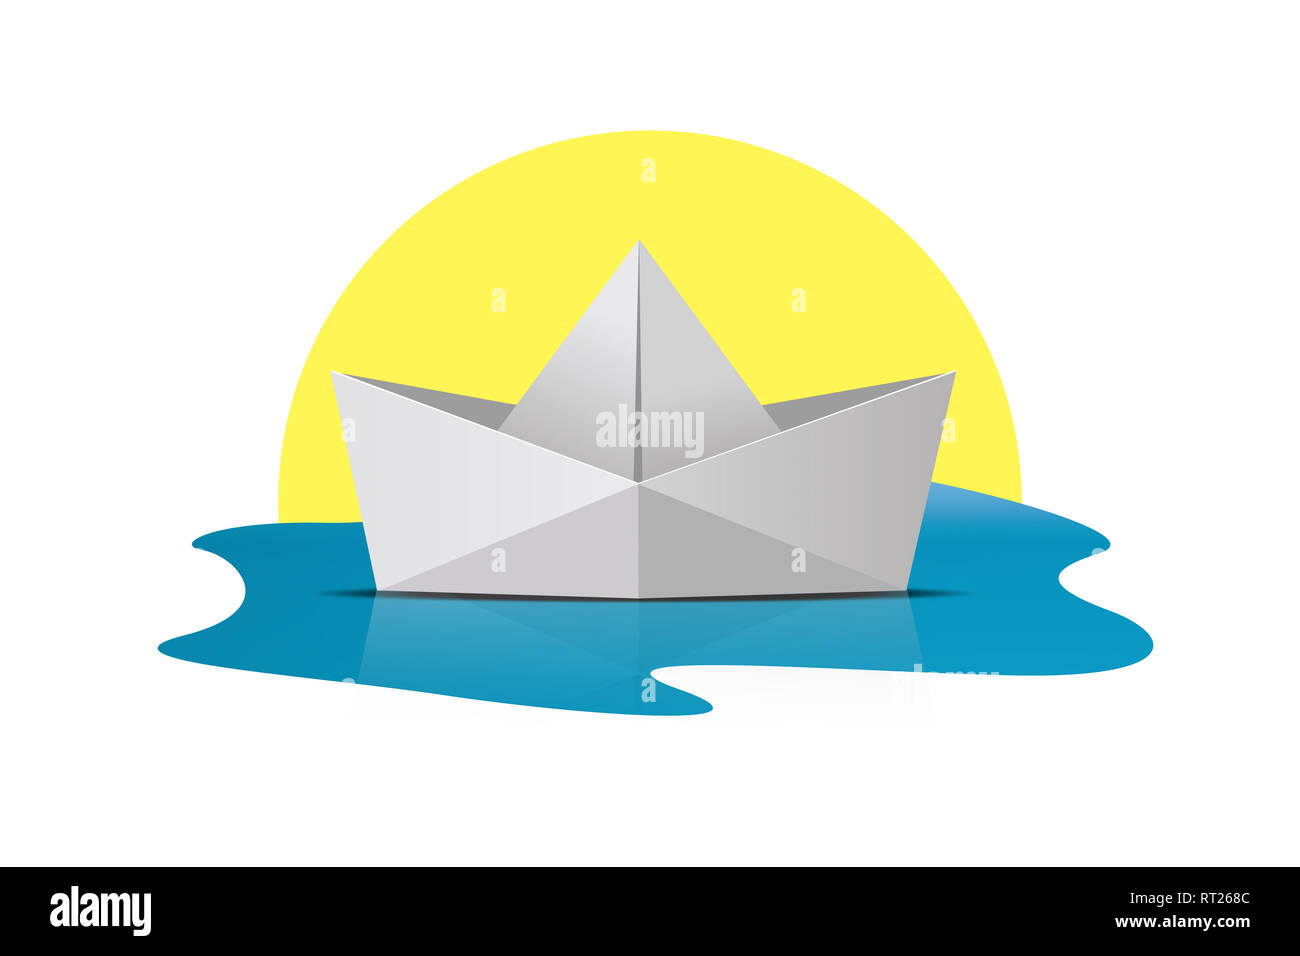 Folder paper ship boat origami on sea water and sun, isolated on white background. - Stock Image